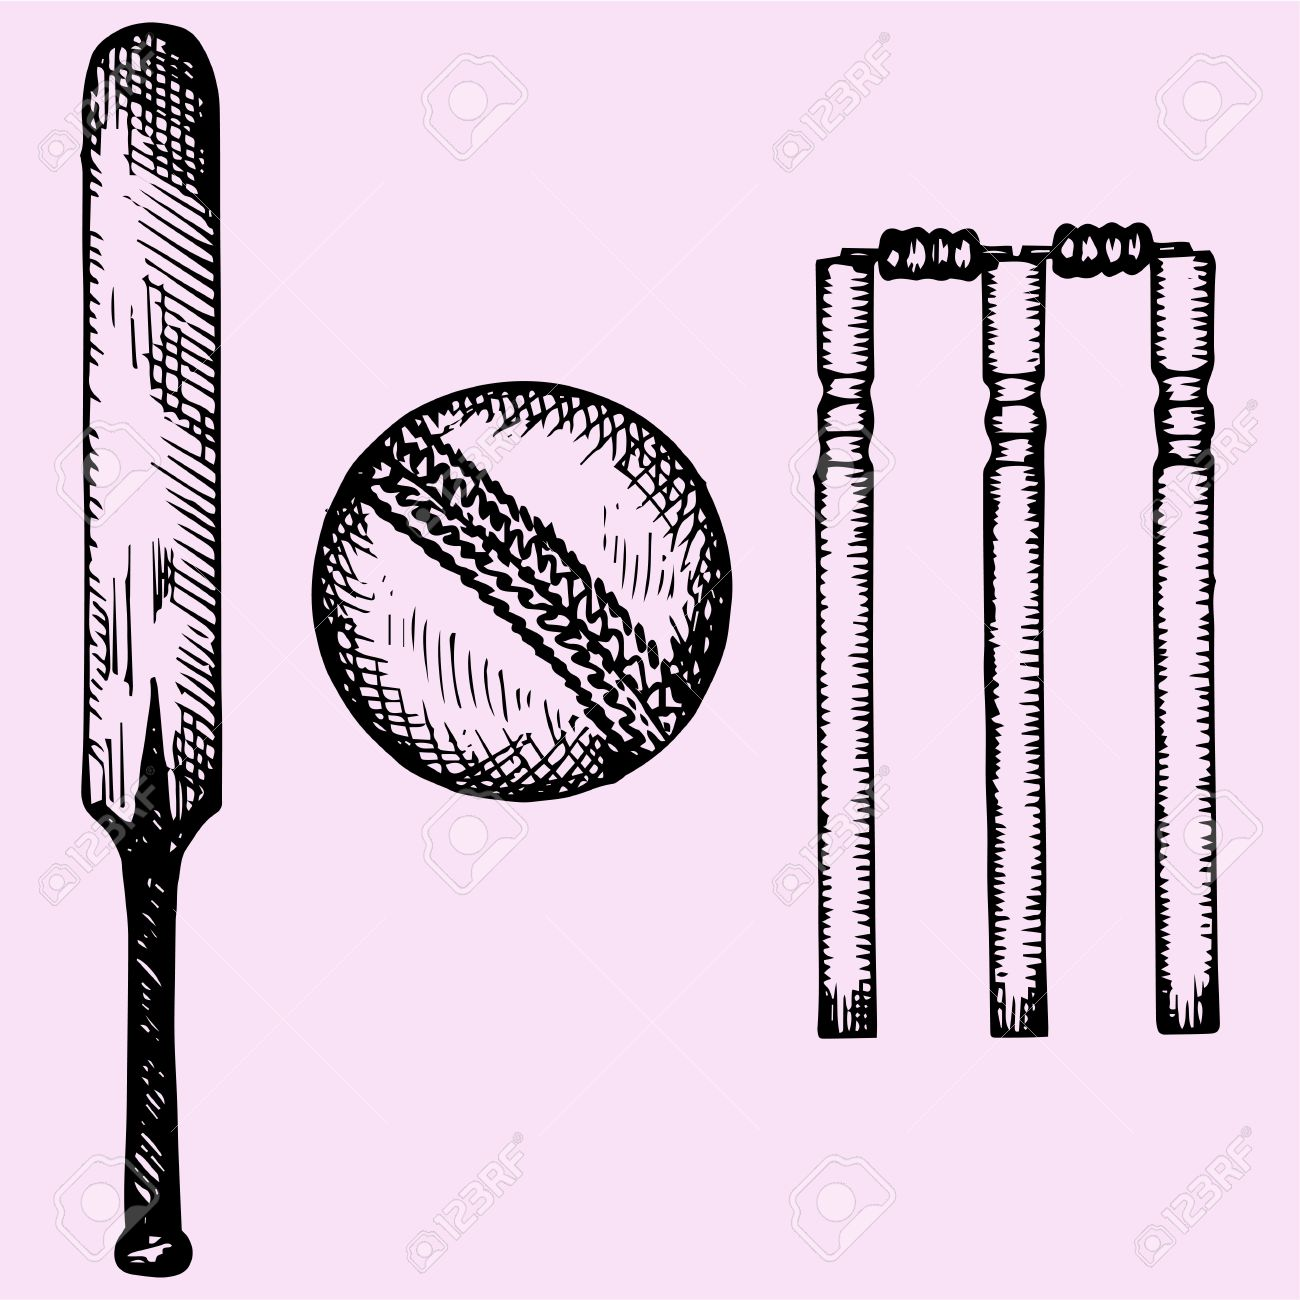 Set Of Equipment For Cricket Bat Ball Wicket Doodle Style